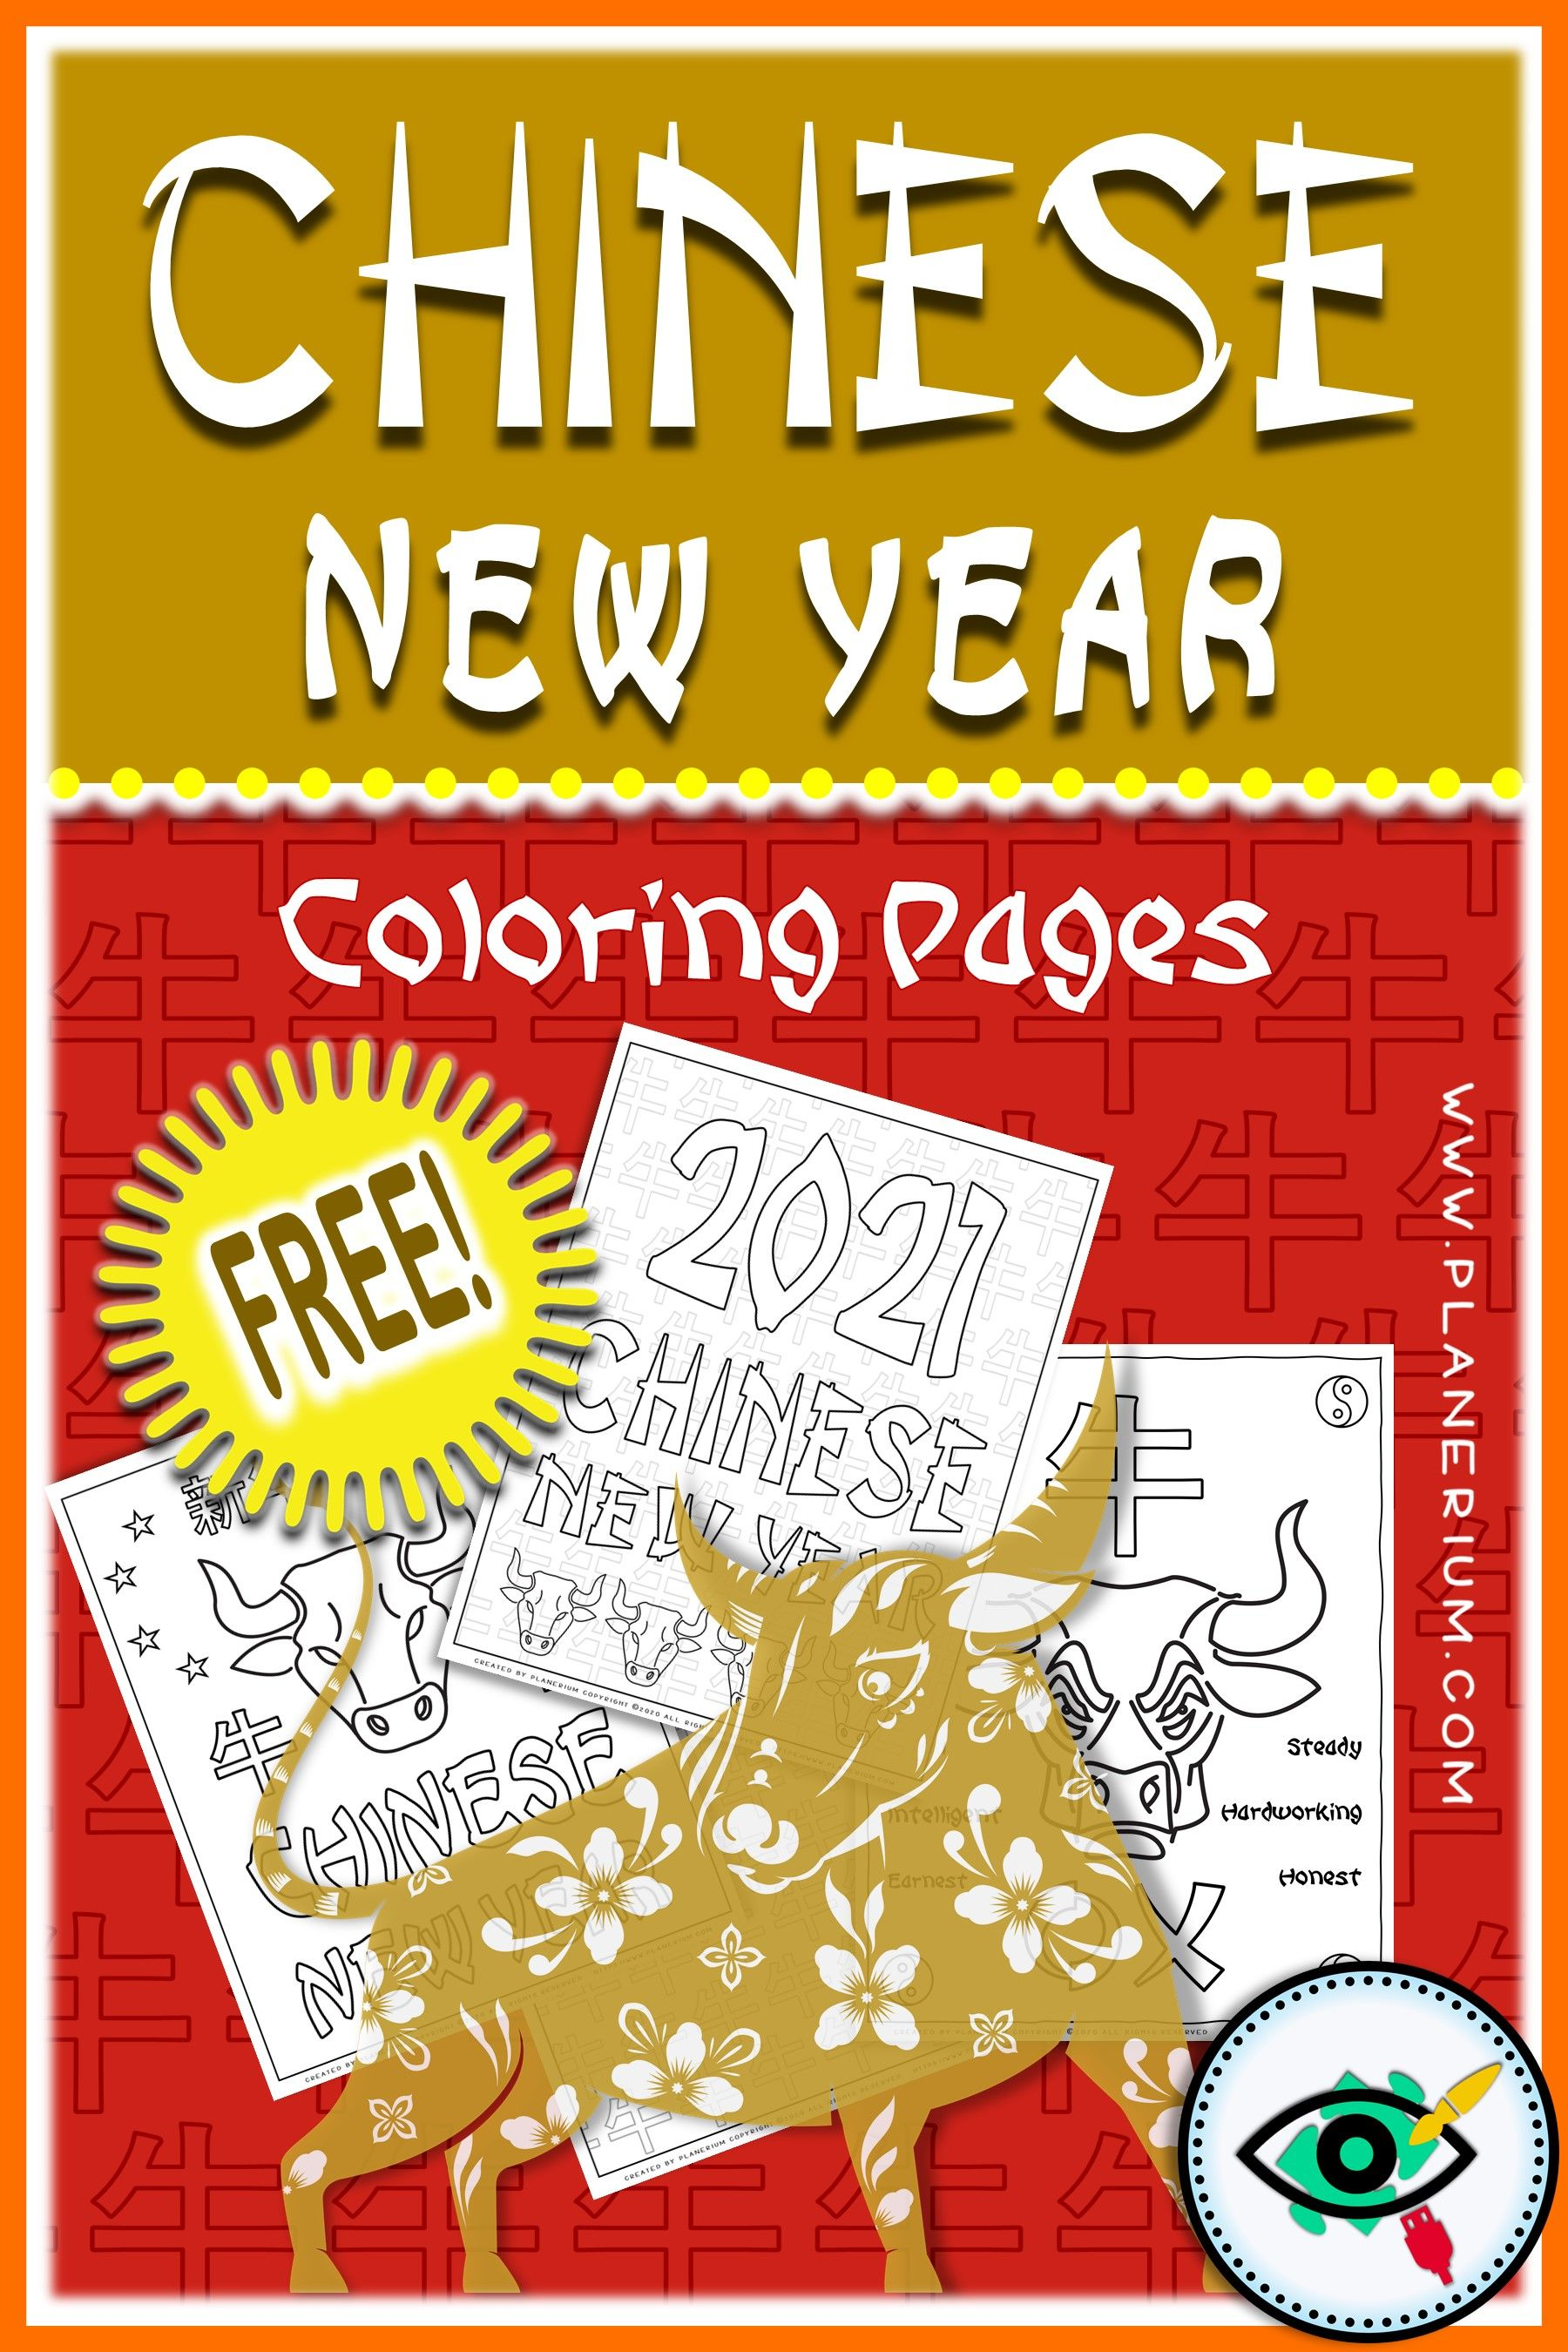 Happy Chinese New Year 2021 Of The Ox Lunar New Year Coloring Pages New Year Coloring Pages Chinese New Year Kids Chinese New Year Crafts For Kids